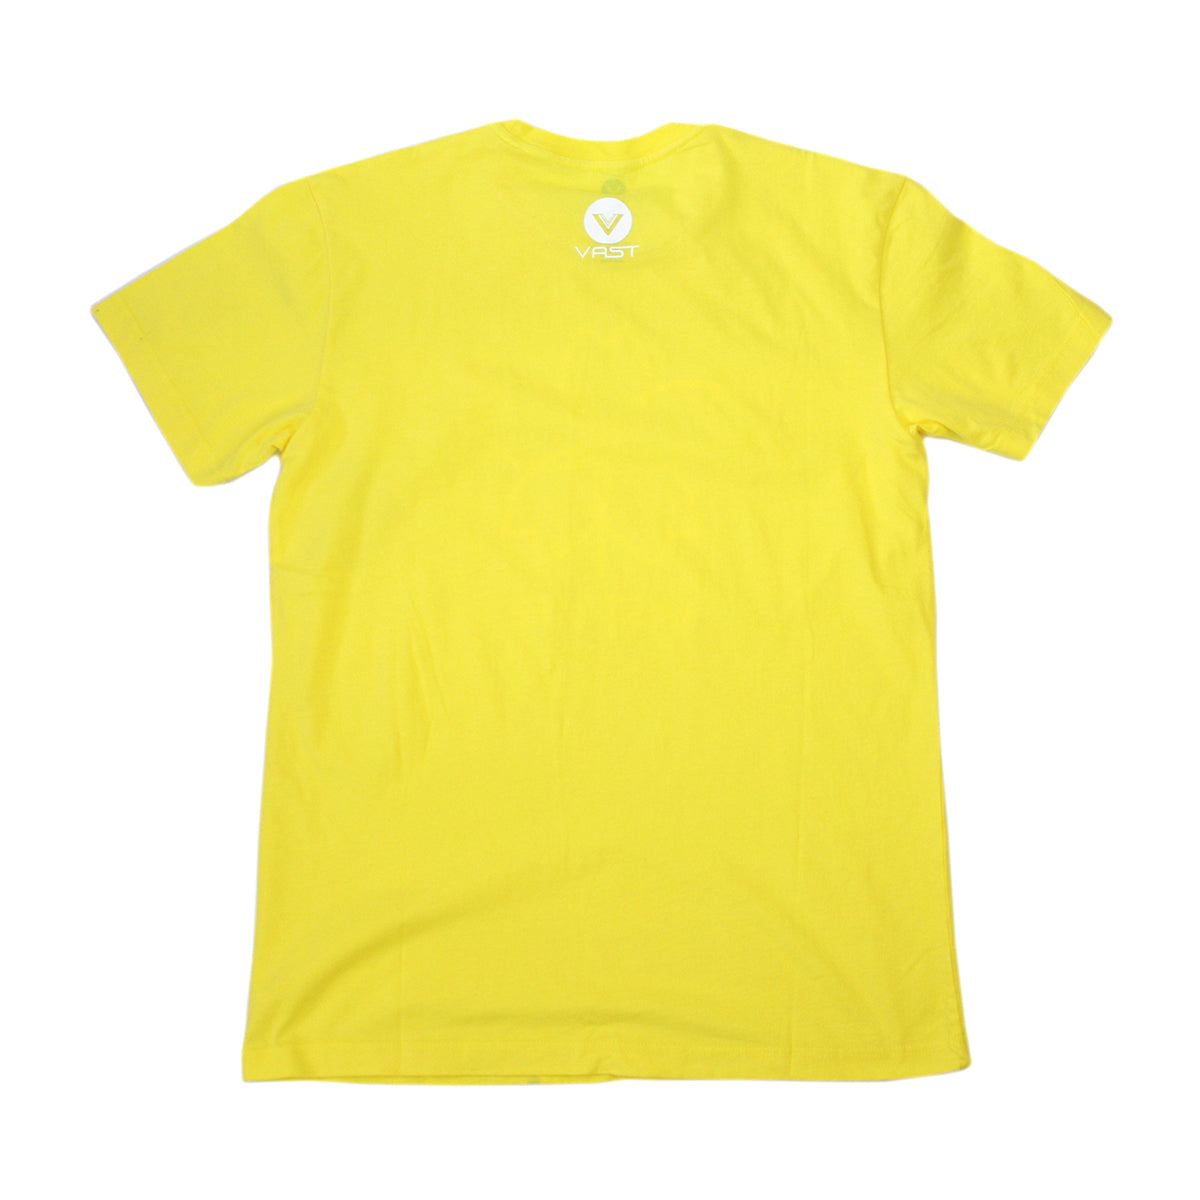 VAST-VS SAKURA TEE (YELLOW)